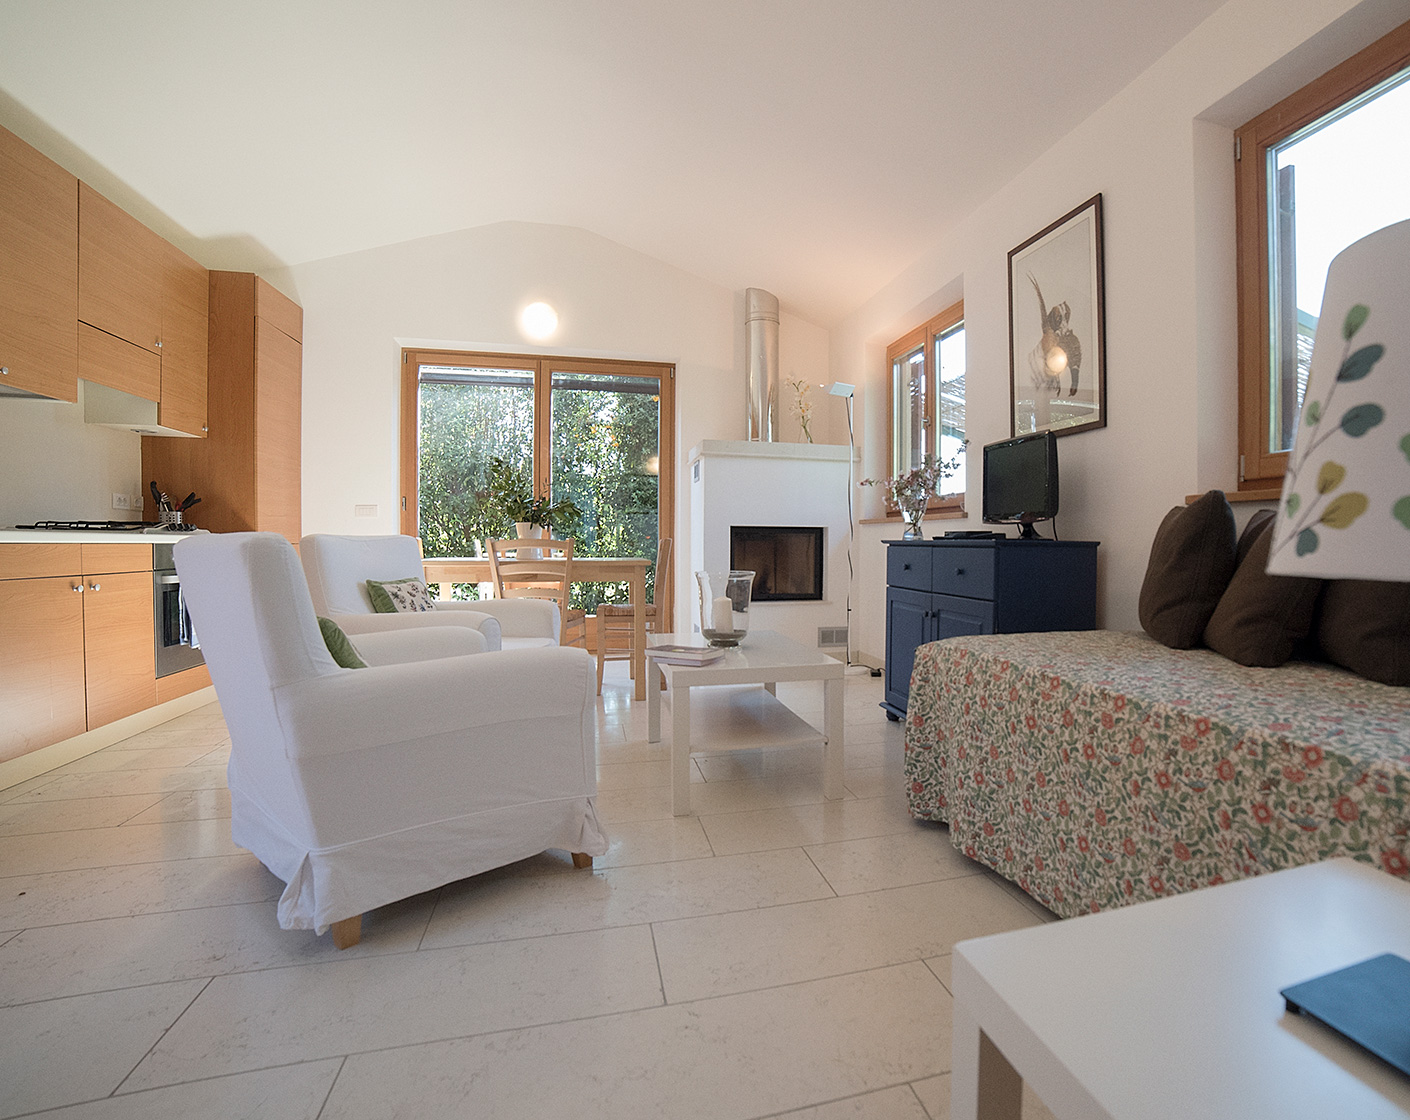 apartments type 4 for relaxed holidays by the sea in Tuscany